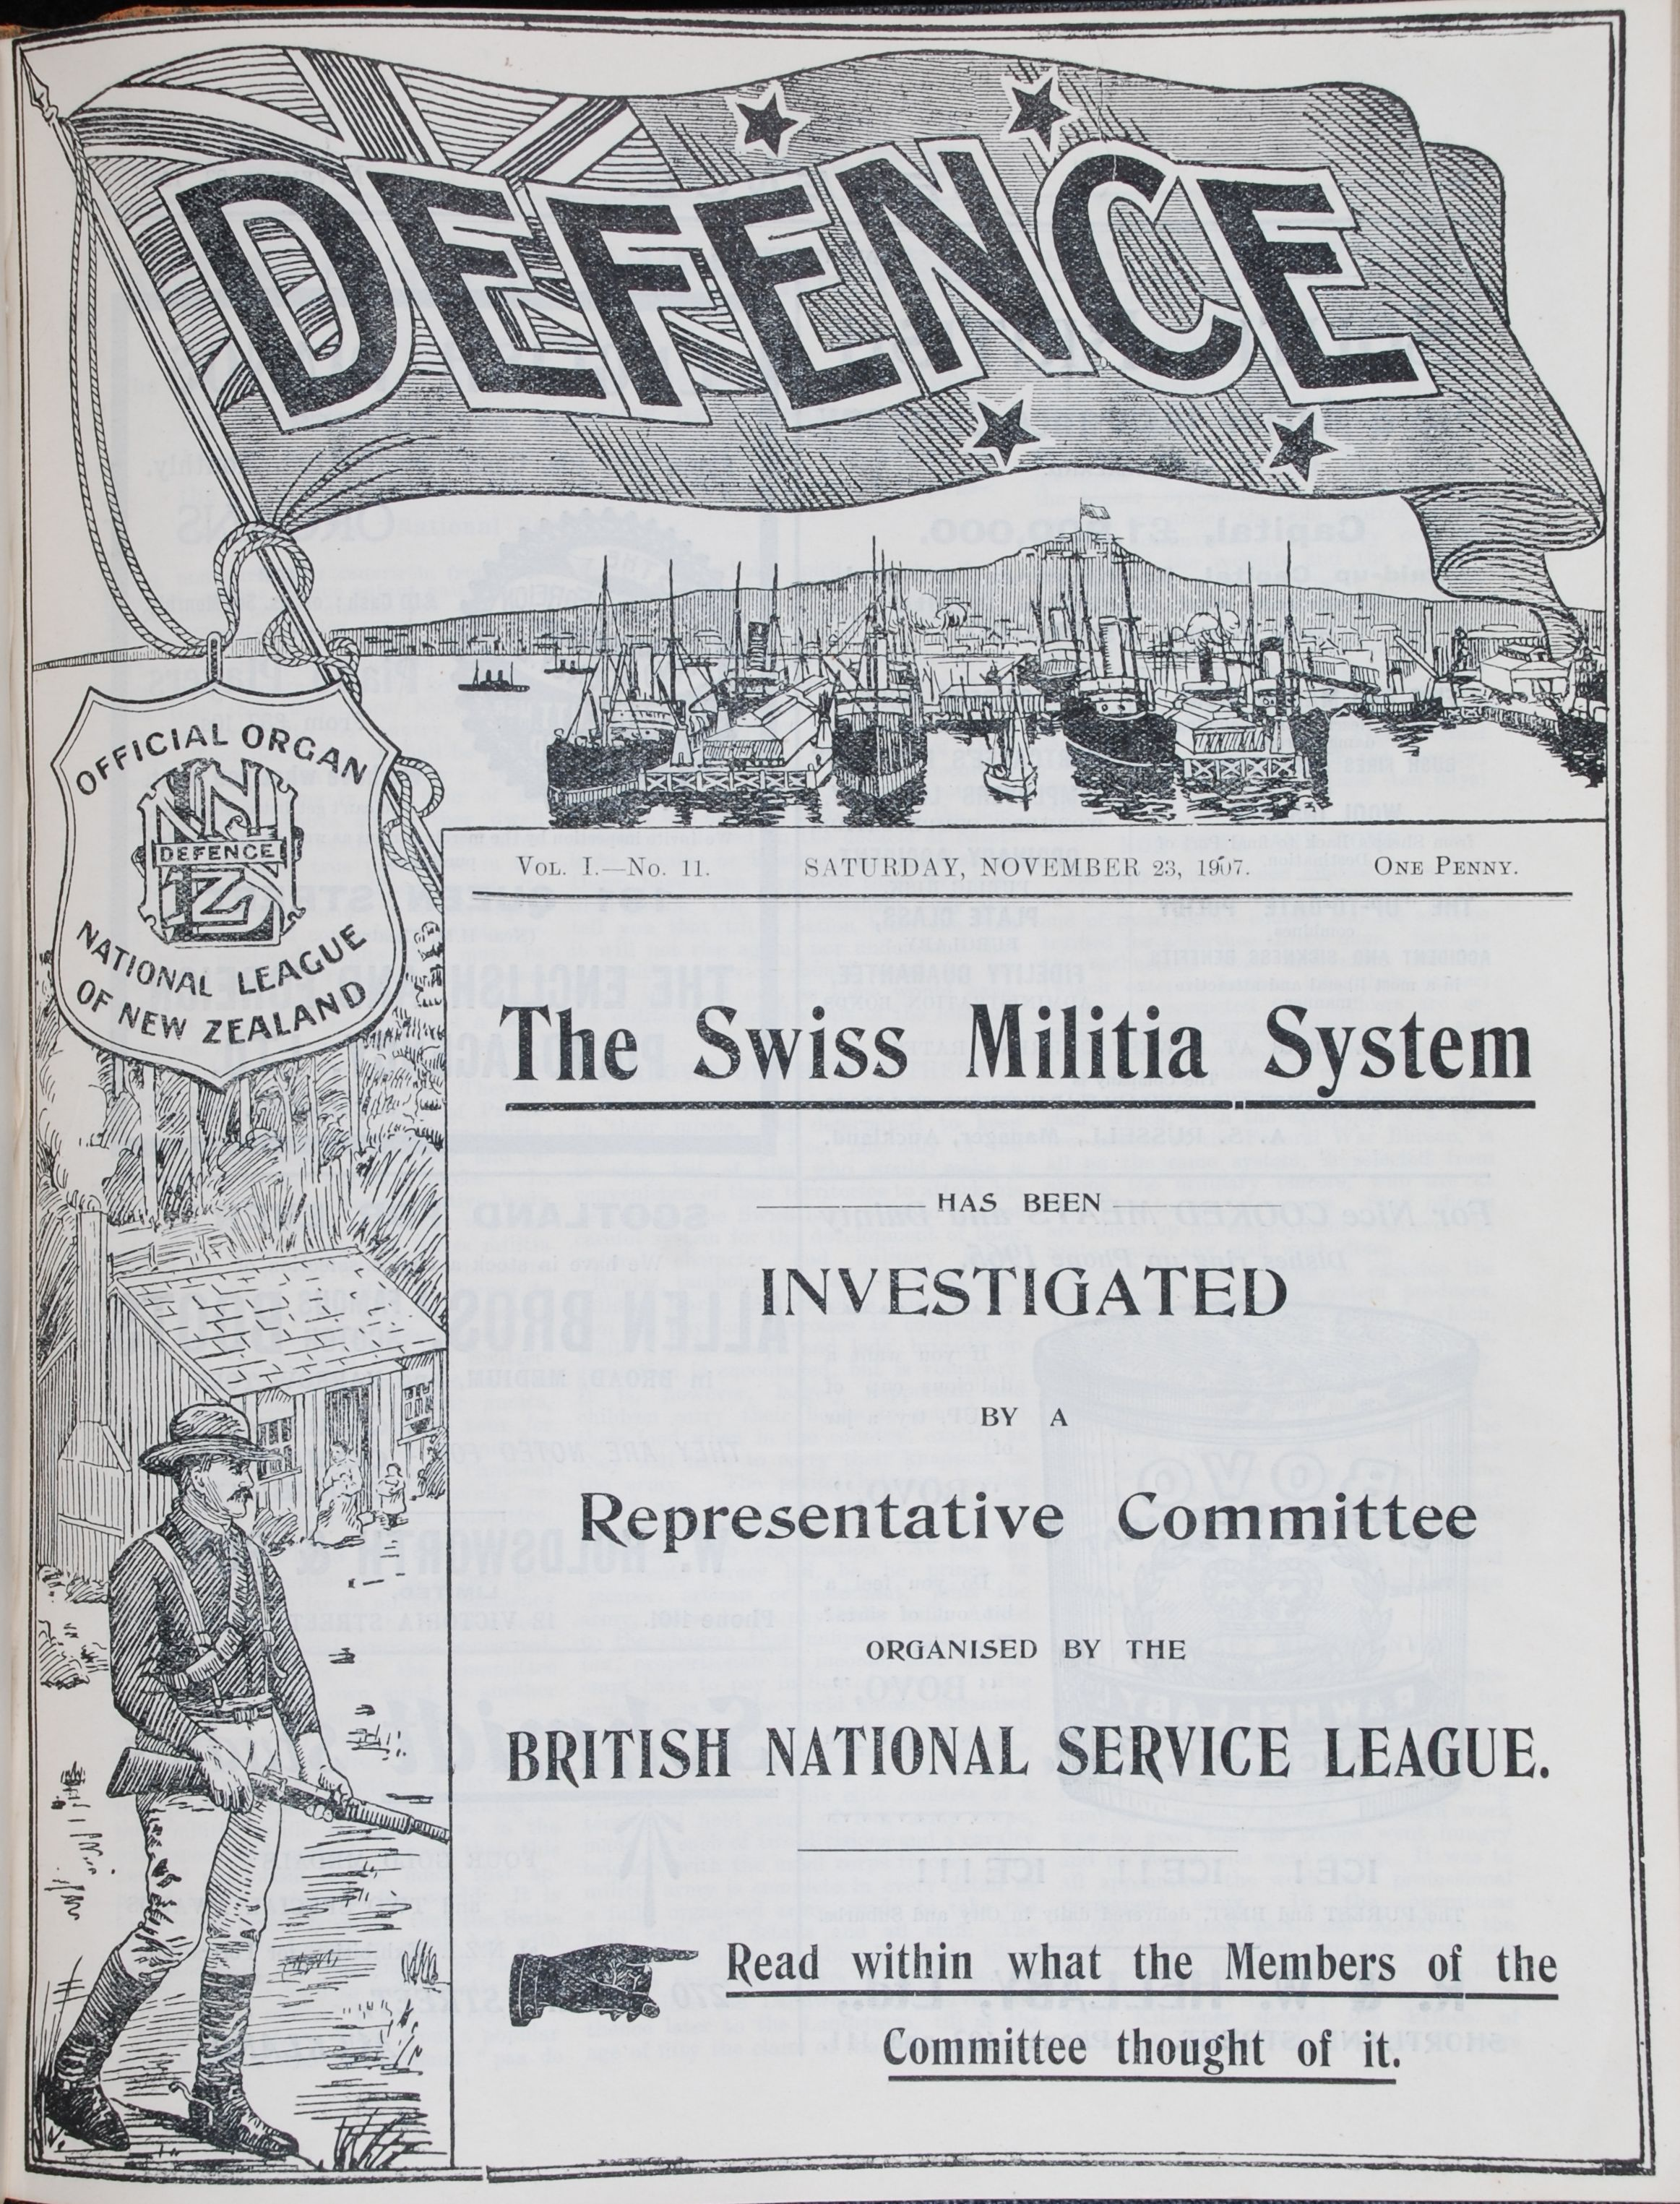 Defence (National League of New Zealand). Vol.1-3 1906-1910.   Auckland: Robert Mundie Hacket, 1906-1910.